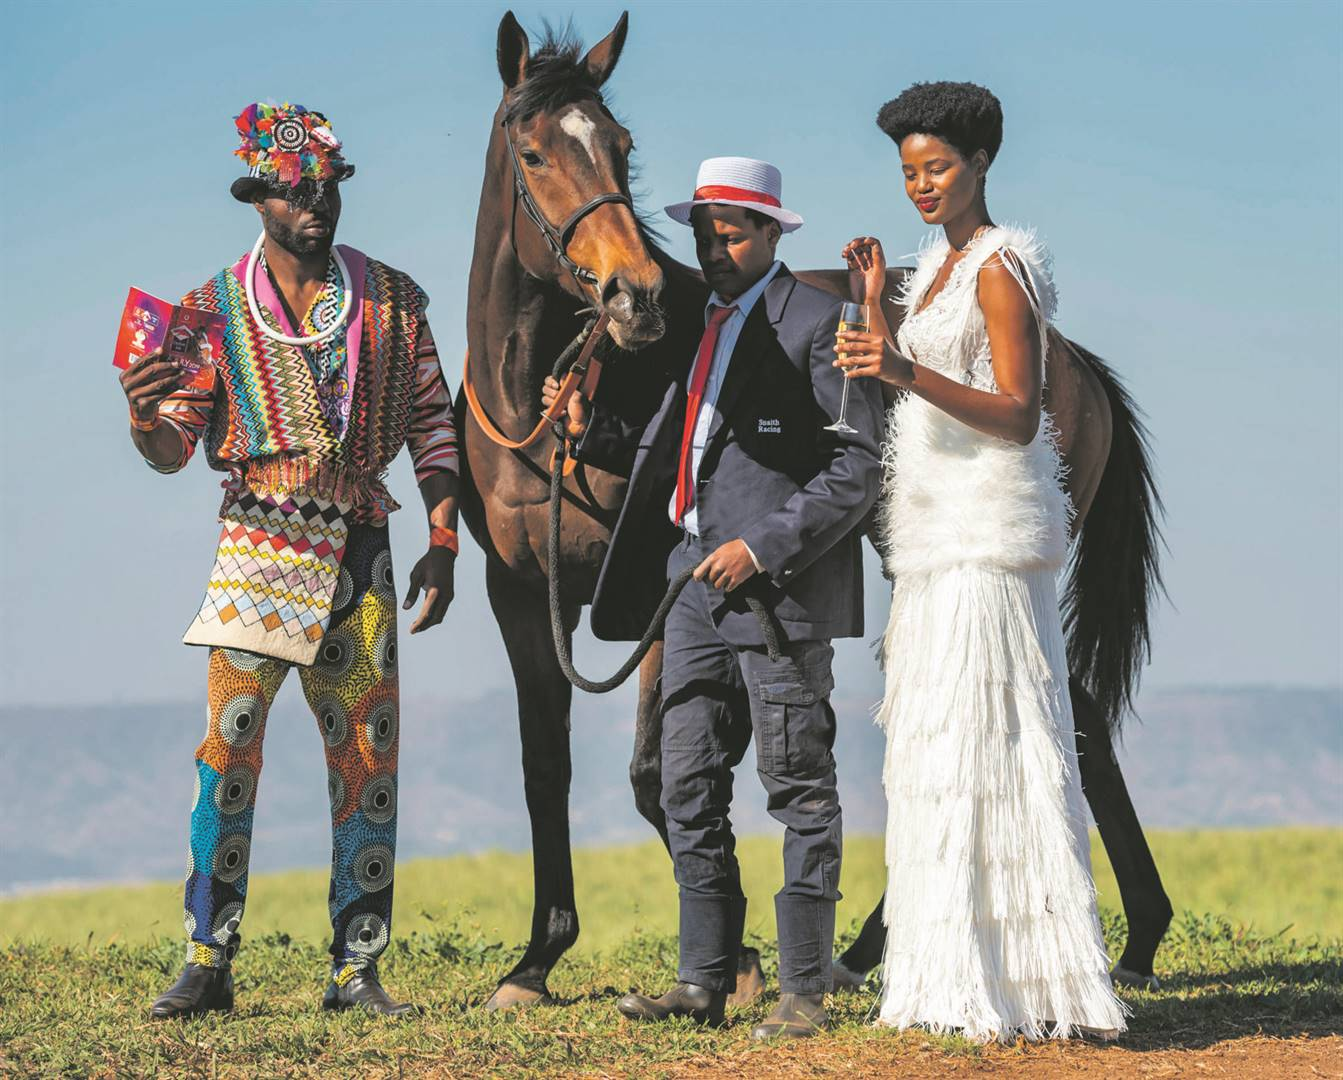 Blast from the past: Revellers at a previous Vodacom Durban July